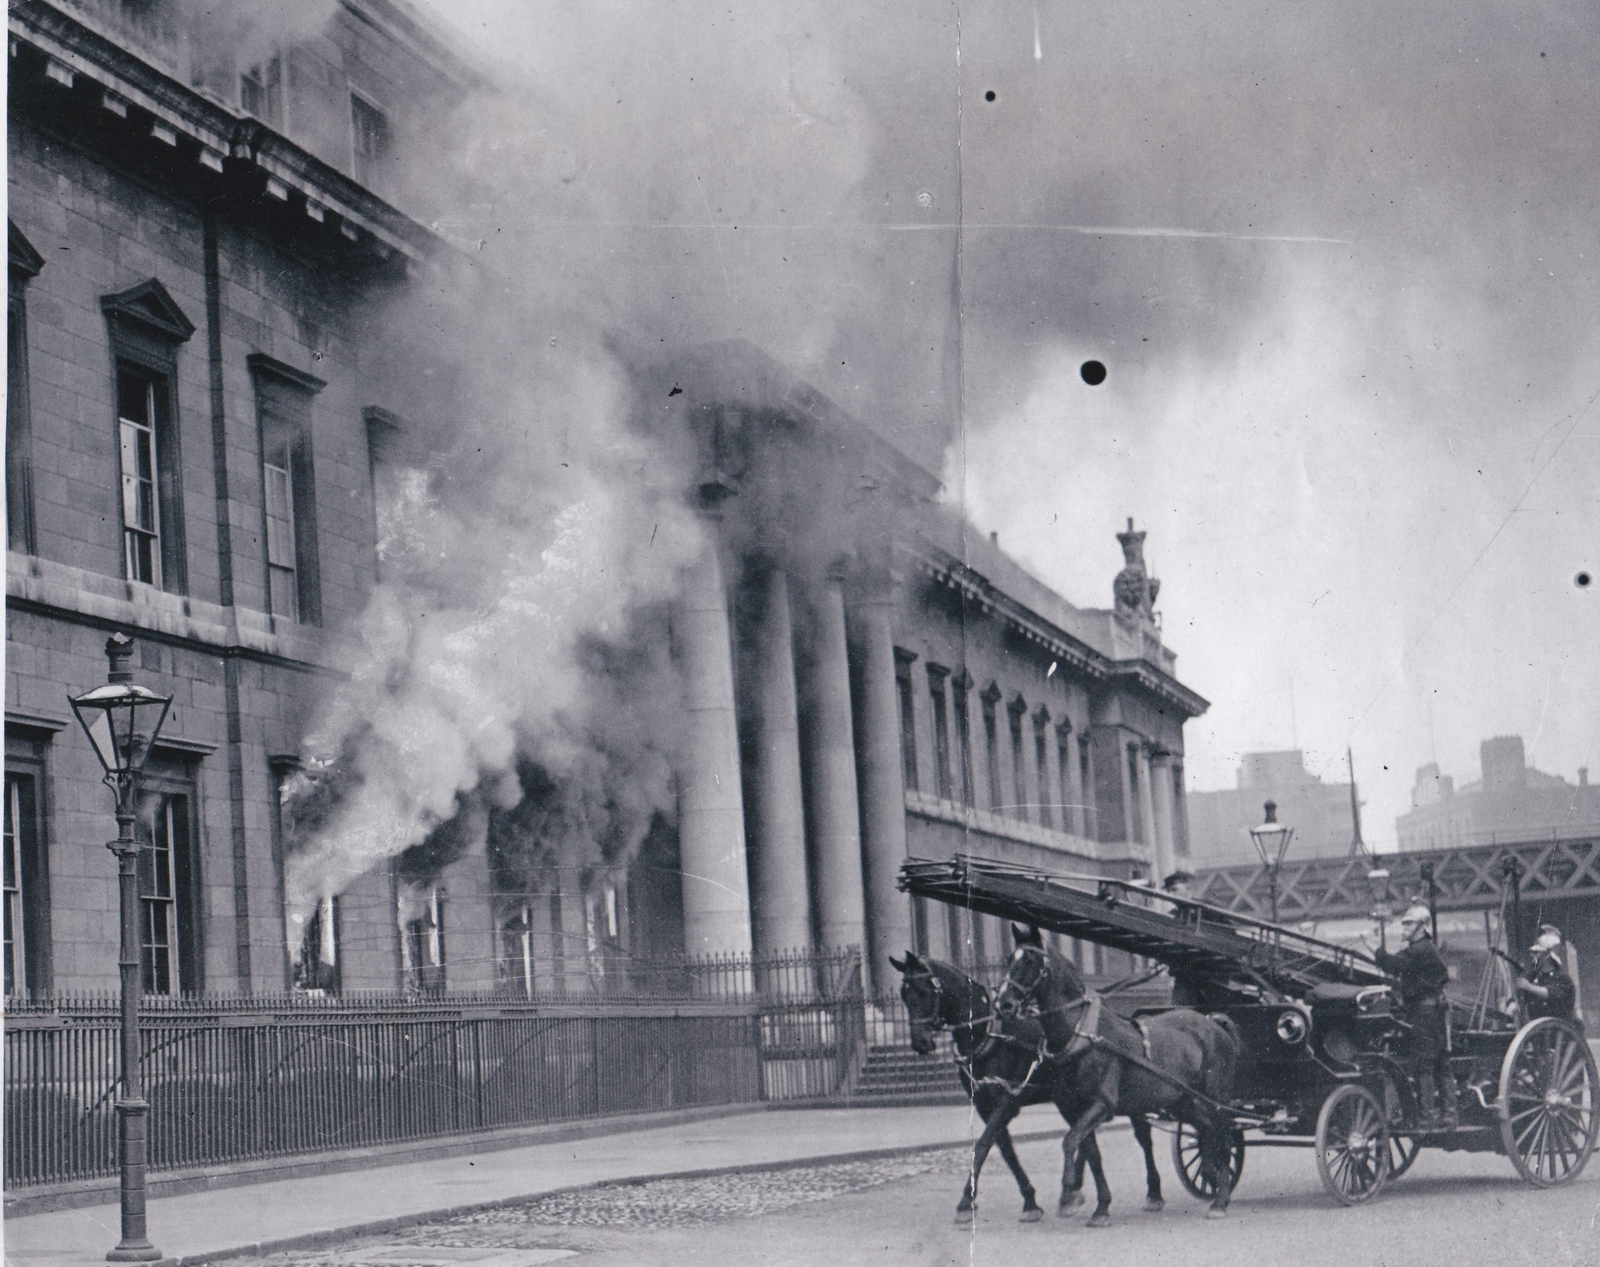 Image - The first units of the Dublin Fire Brigade arriving as the blaze takes hold of the building. Credit: Michael Ward.